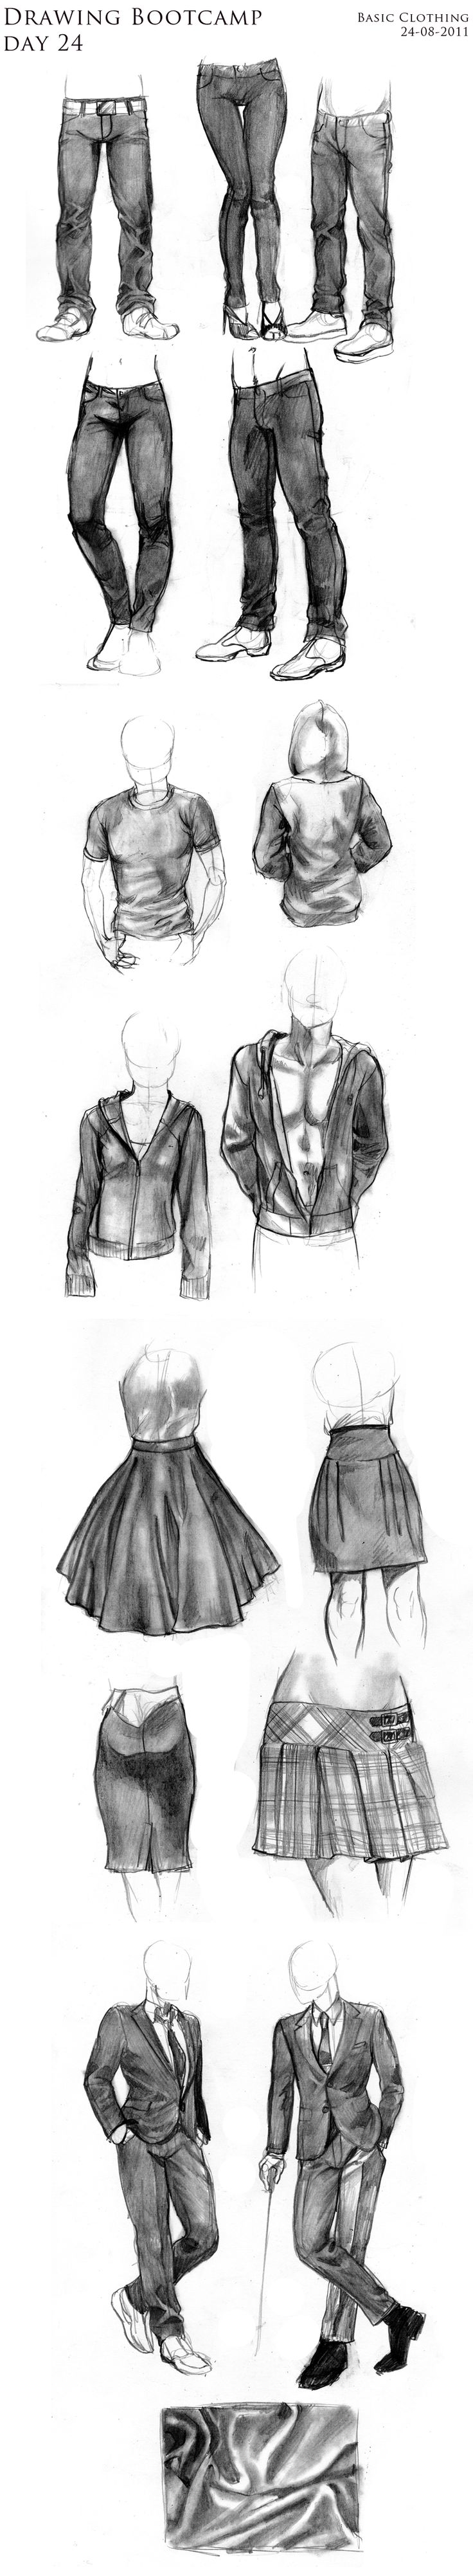 24-08-2011. How to draw Basic Clothing- Tshirt, Jeans, skirt,jacket, tuxedo, clothes fold by Kayla0.deviantart.com